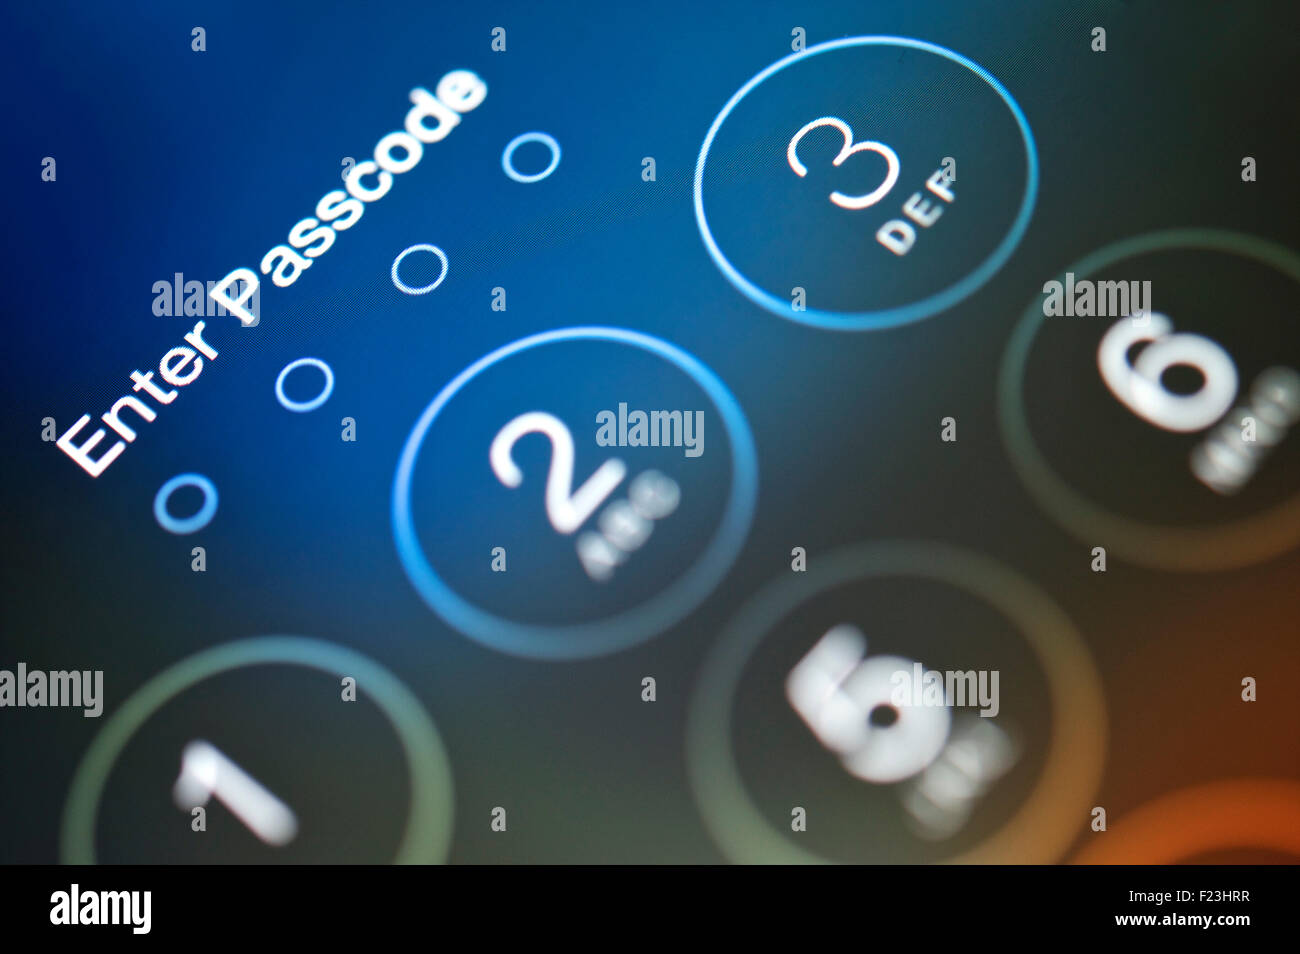 Enter Passcode. Touch screen lock screen requesting passcode. Stock Photo